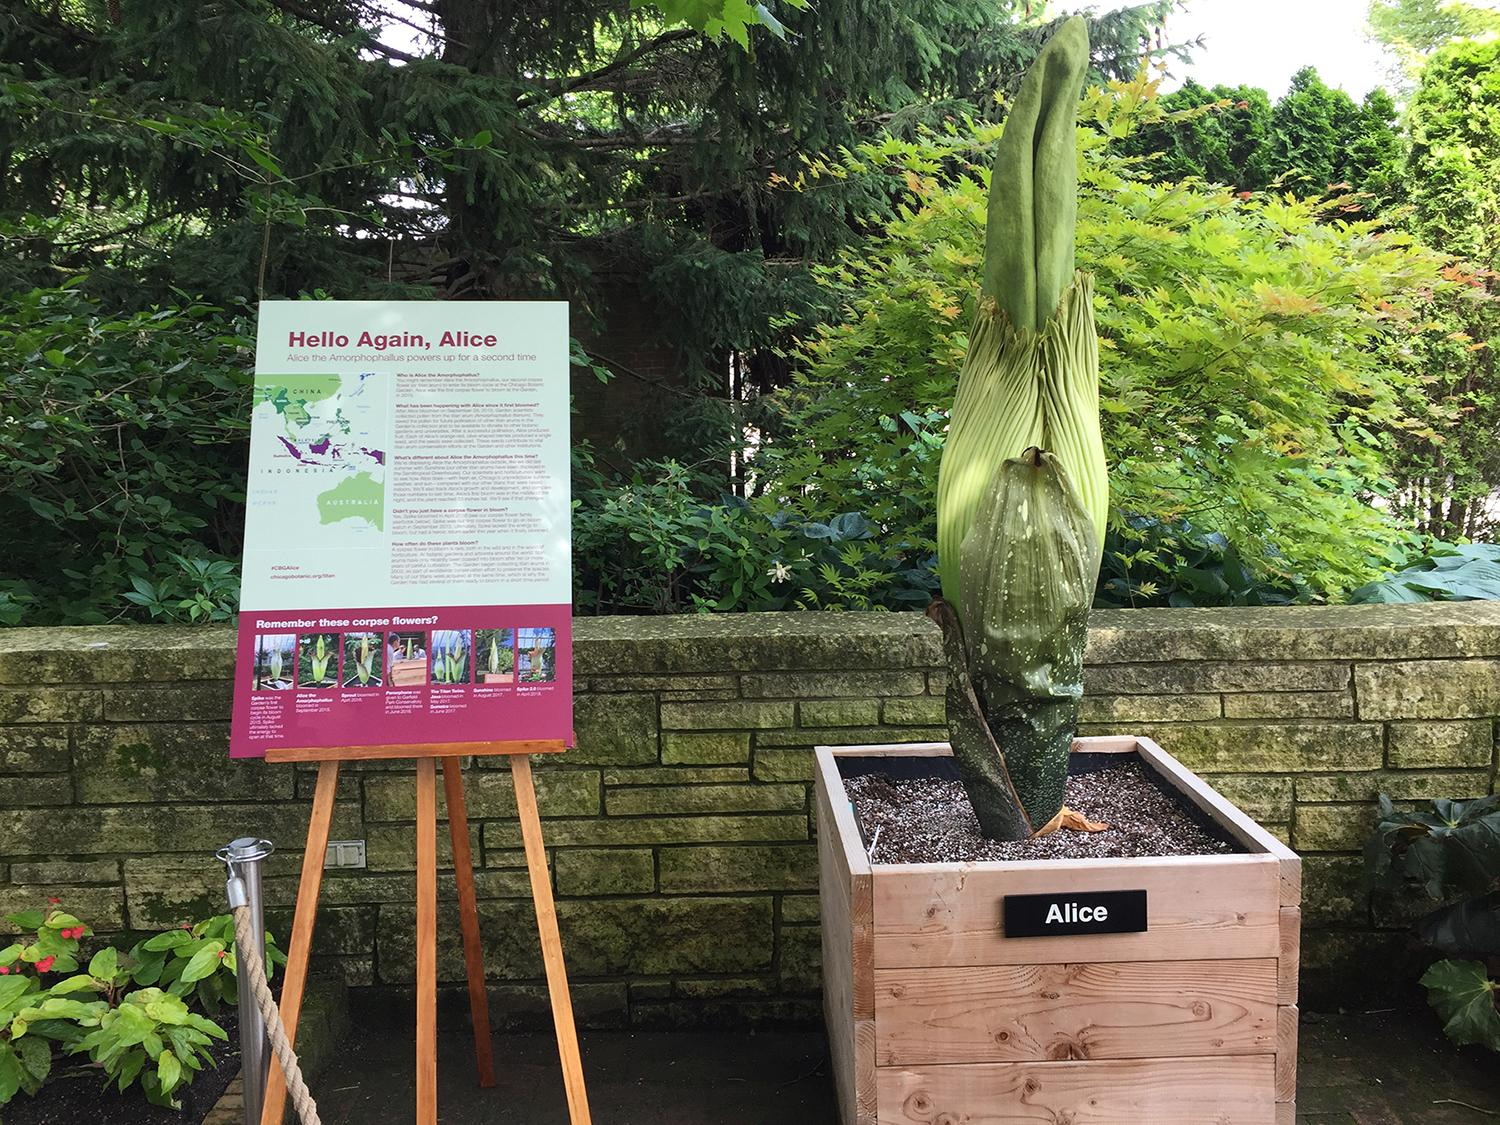 Alice the corpse flower (Courtesy Chicago Botanic Garden)